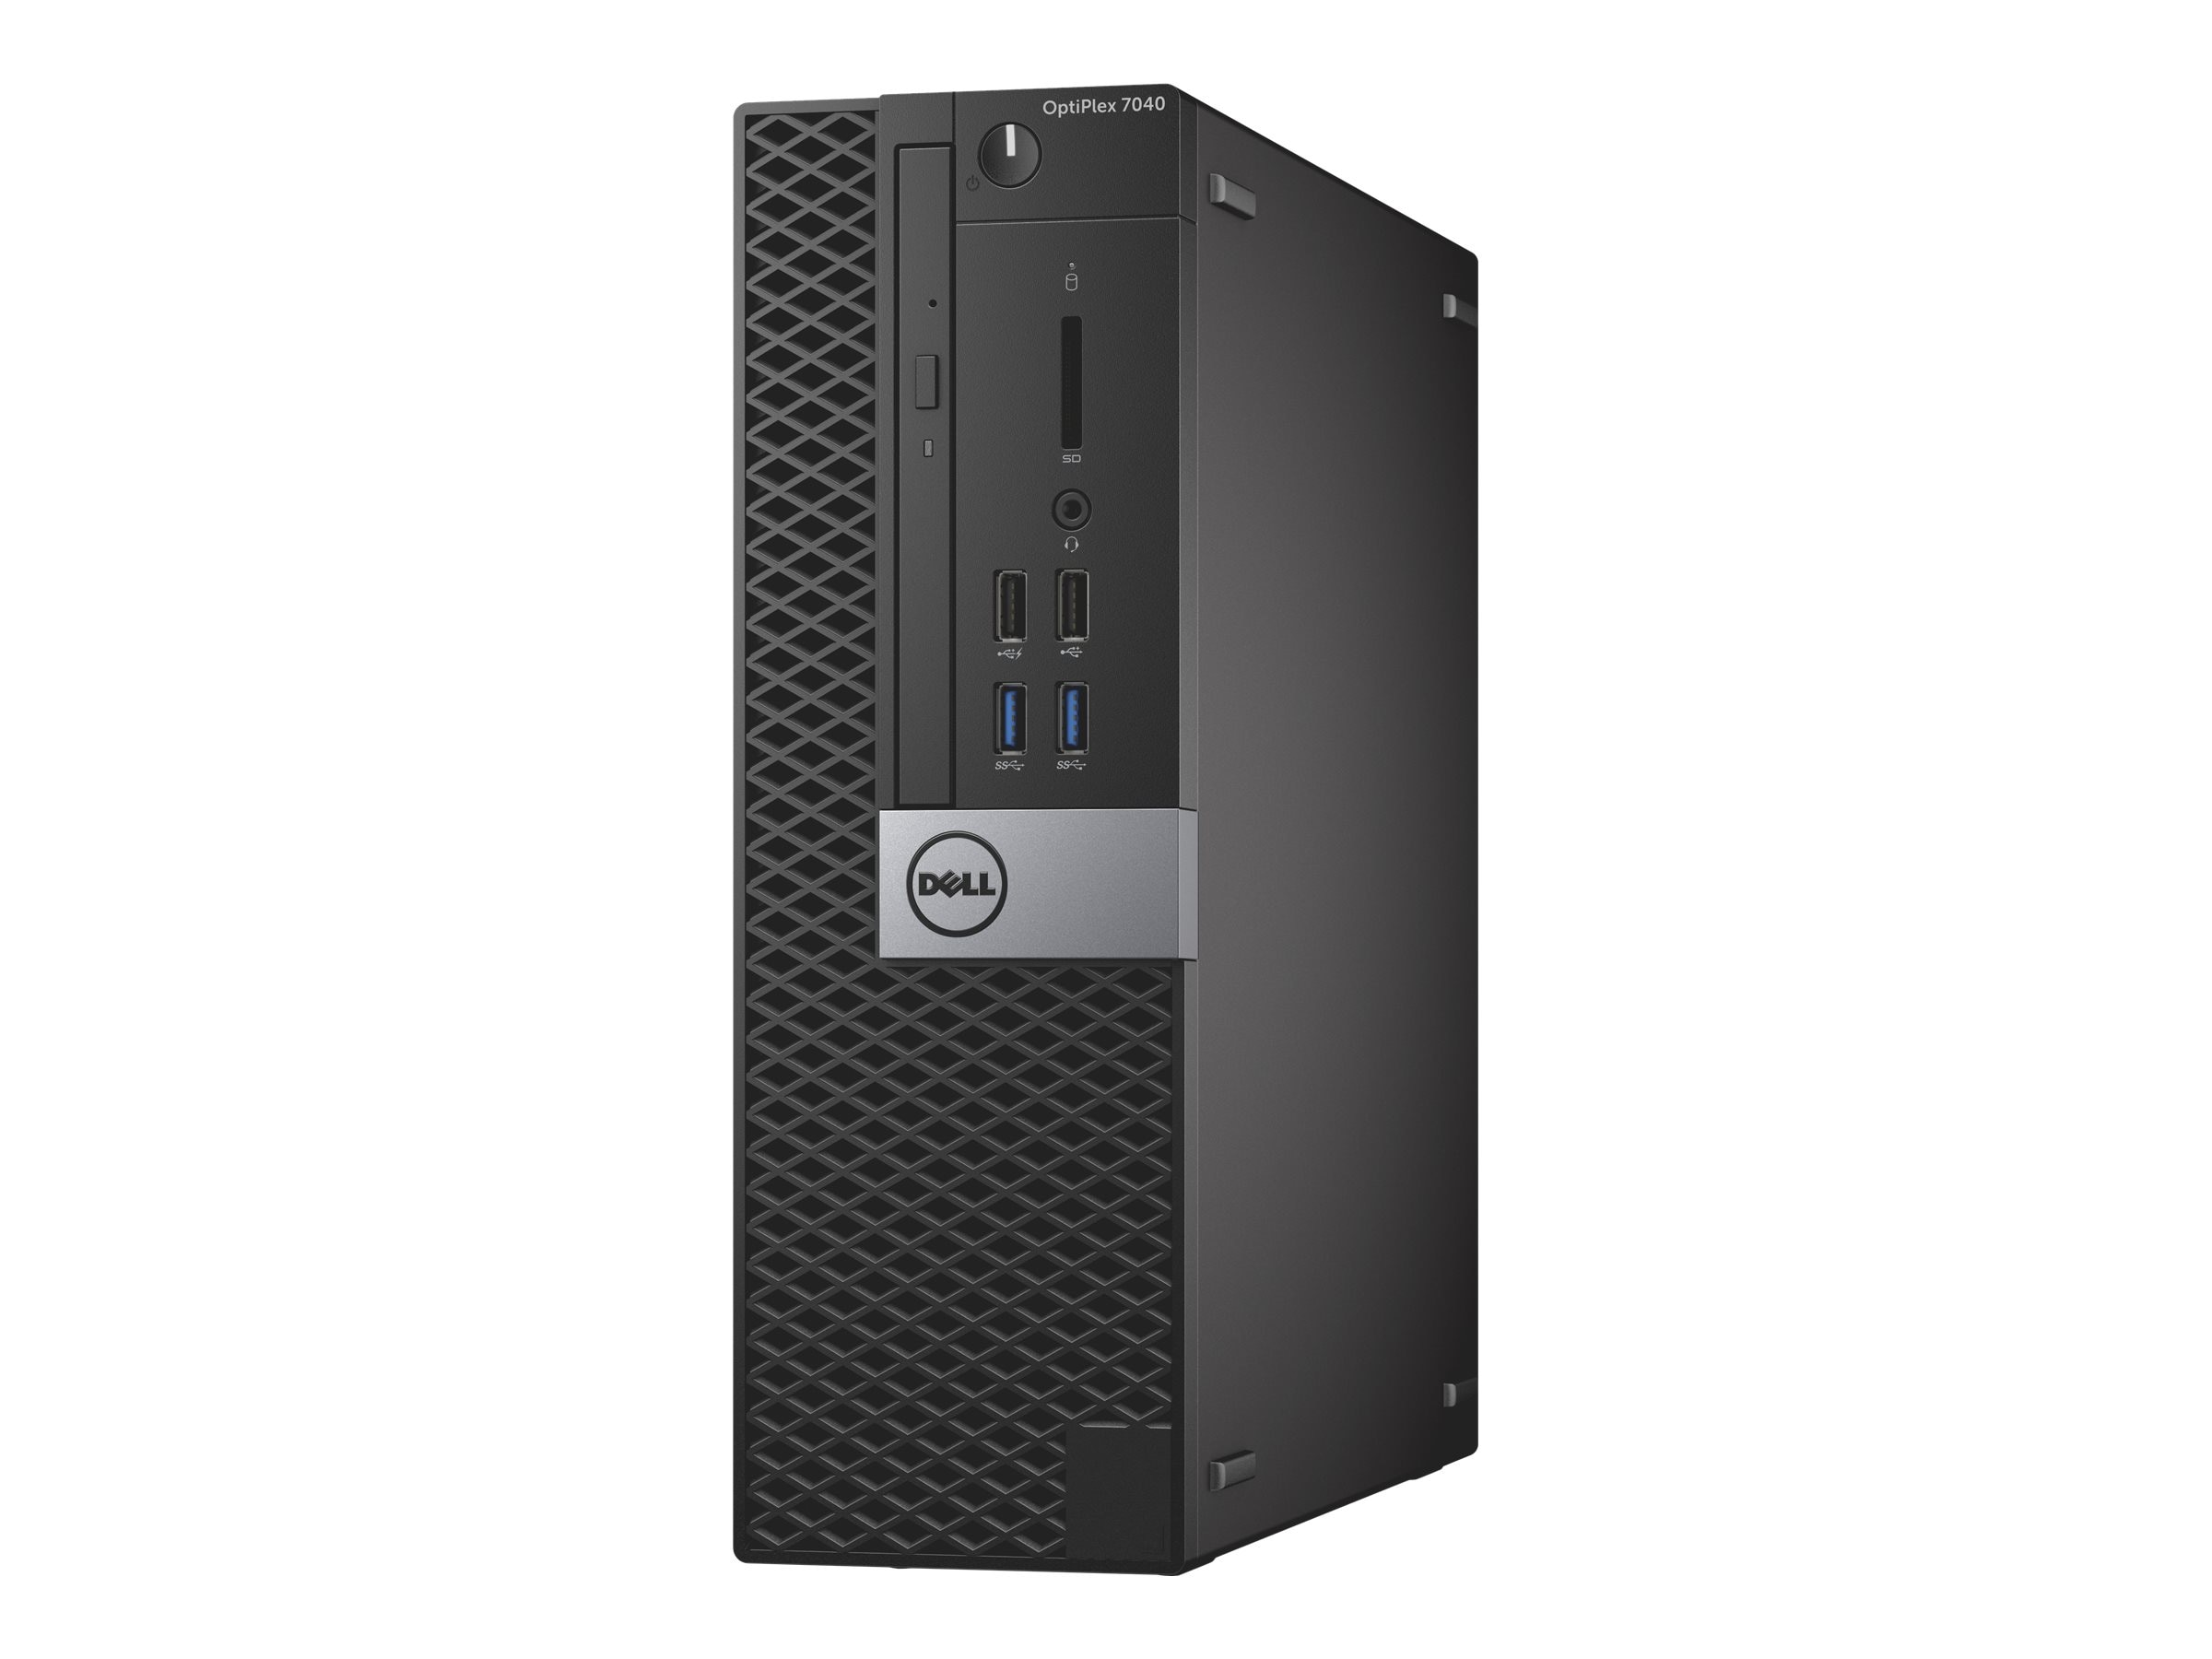 Dell OptiPlex 7040 3.2GHz Core i5 8GB RAM 256GB hard drive